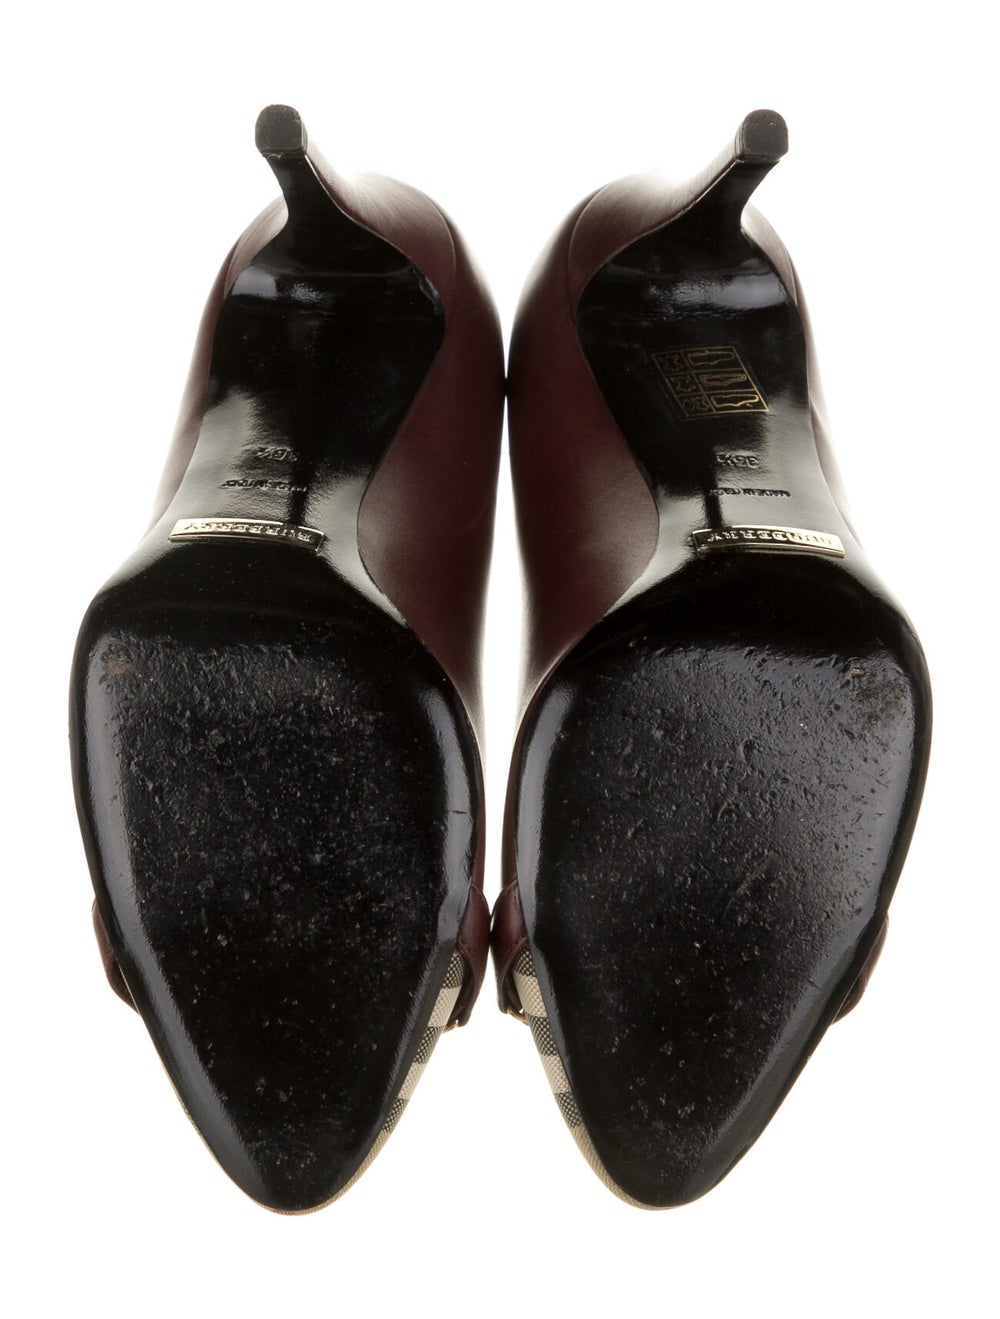 Burberry Leather Pumps - image 5